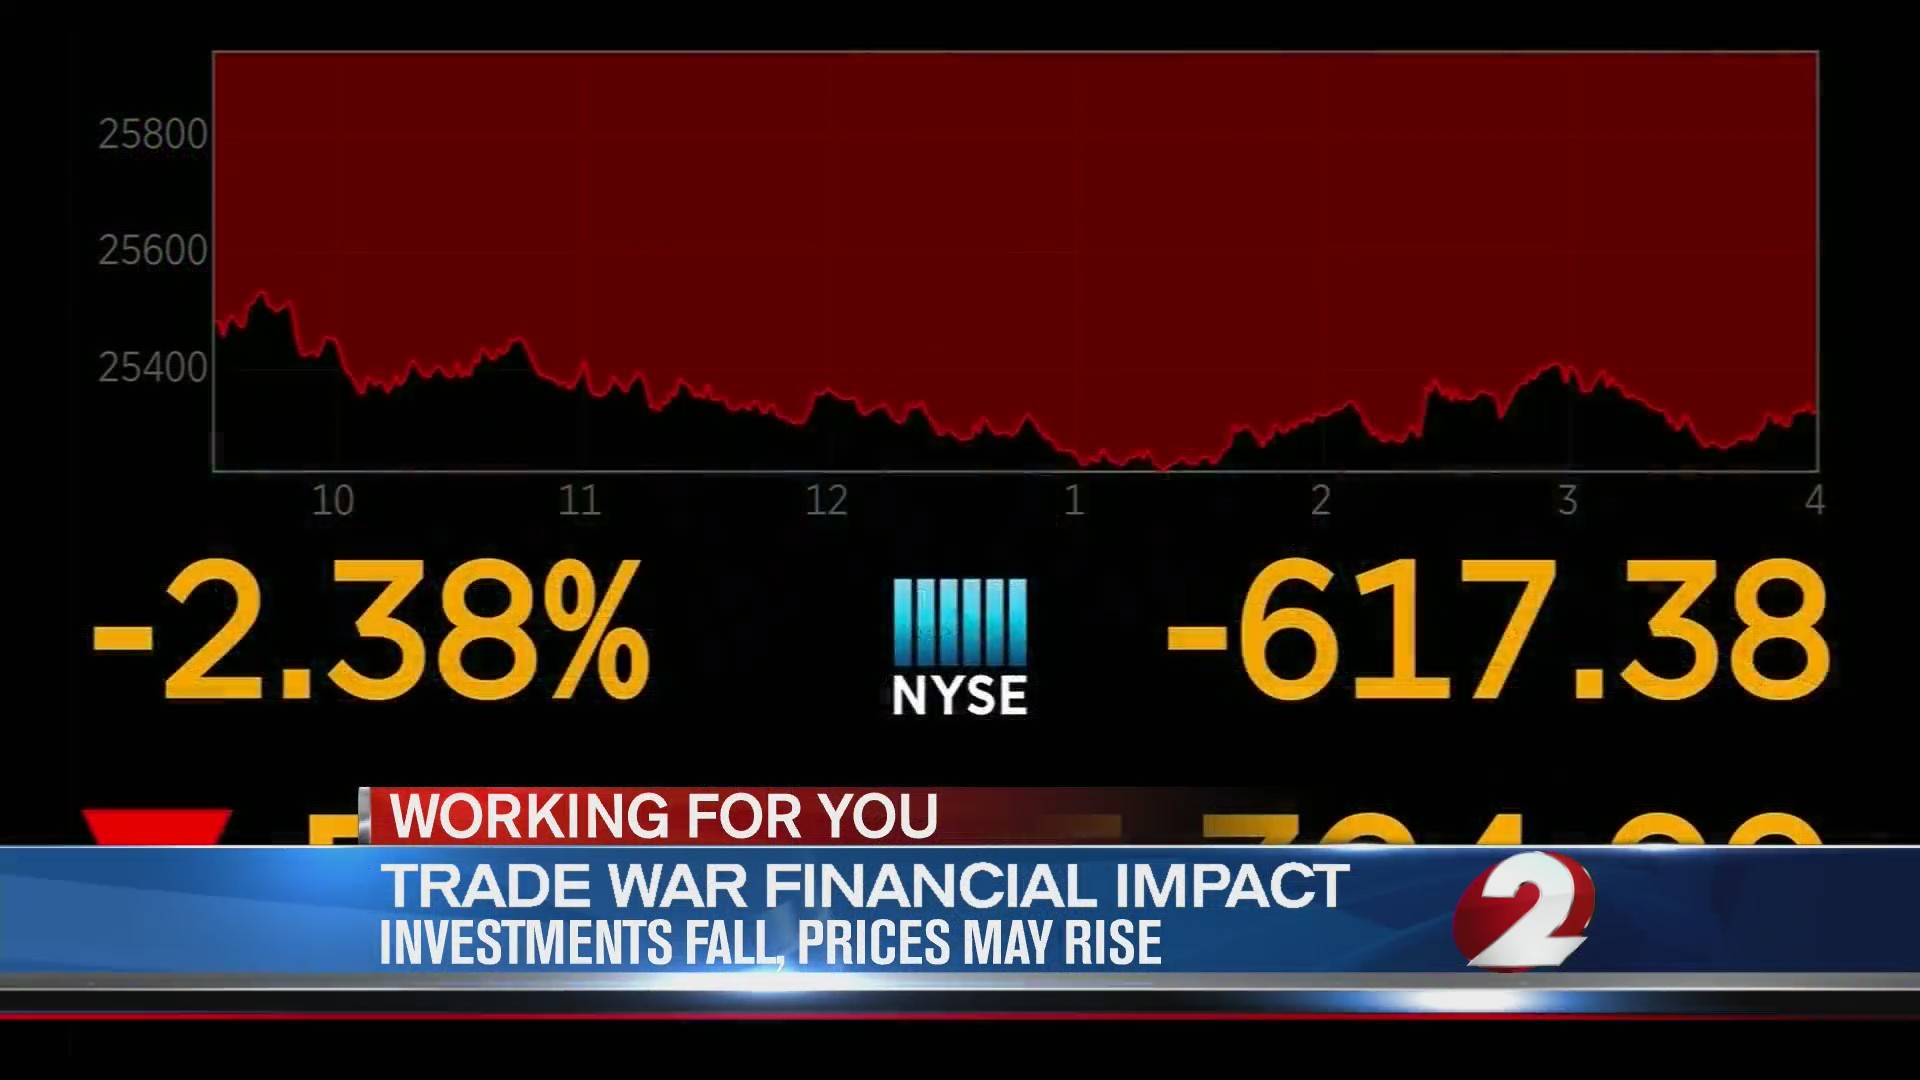 Trade War financial impact: Investments fall, prices may rise